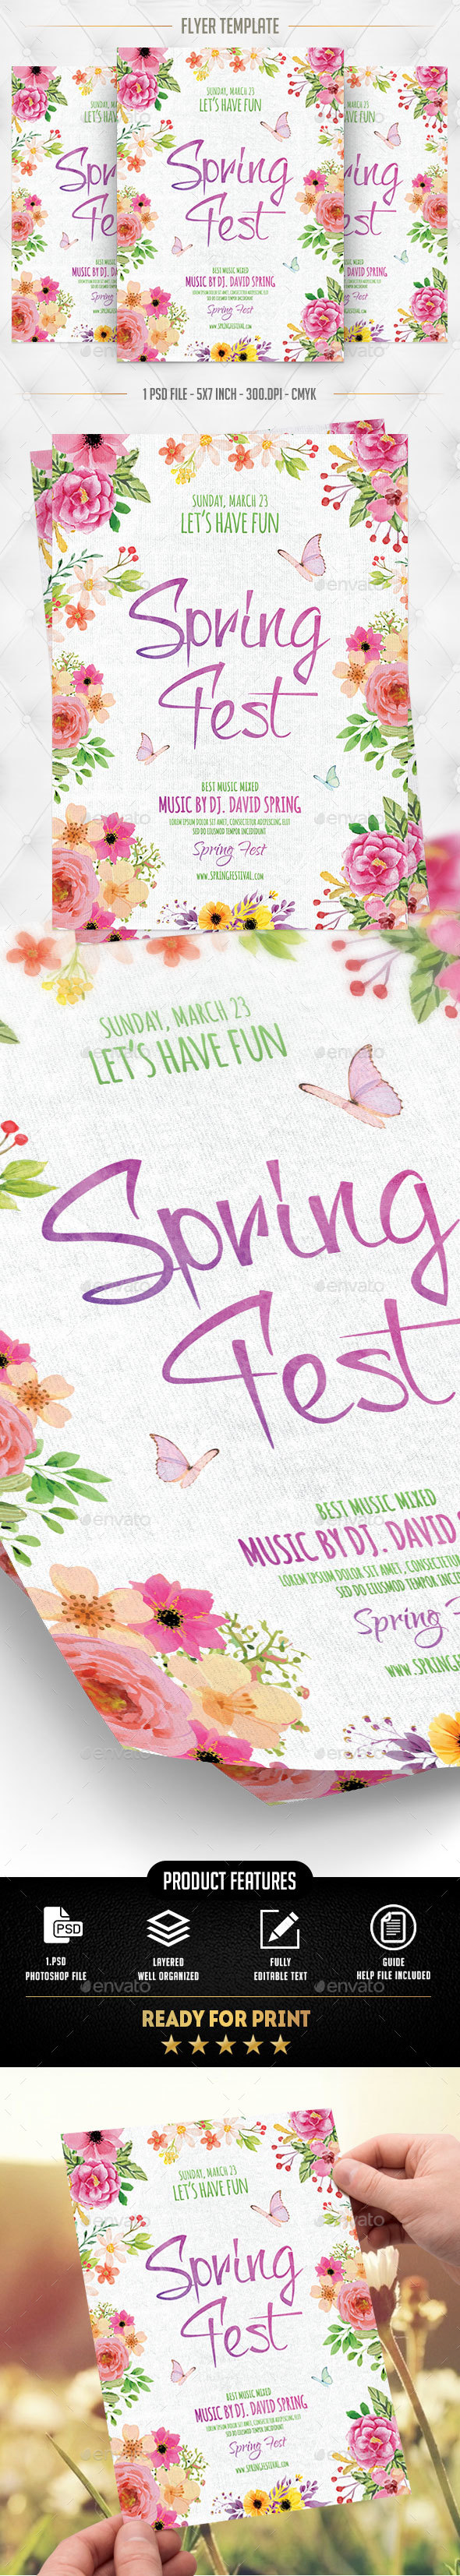 Spring Fest Flyer Template - Flyers Print Templates